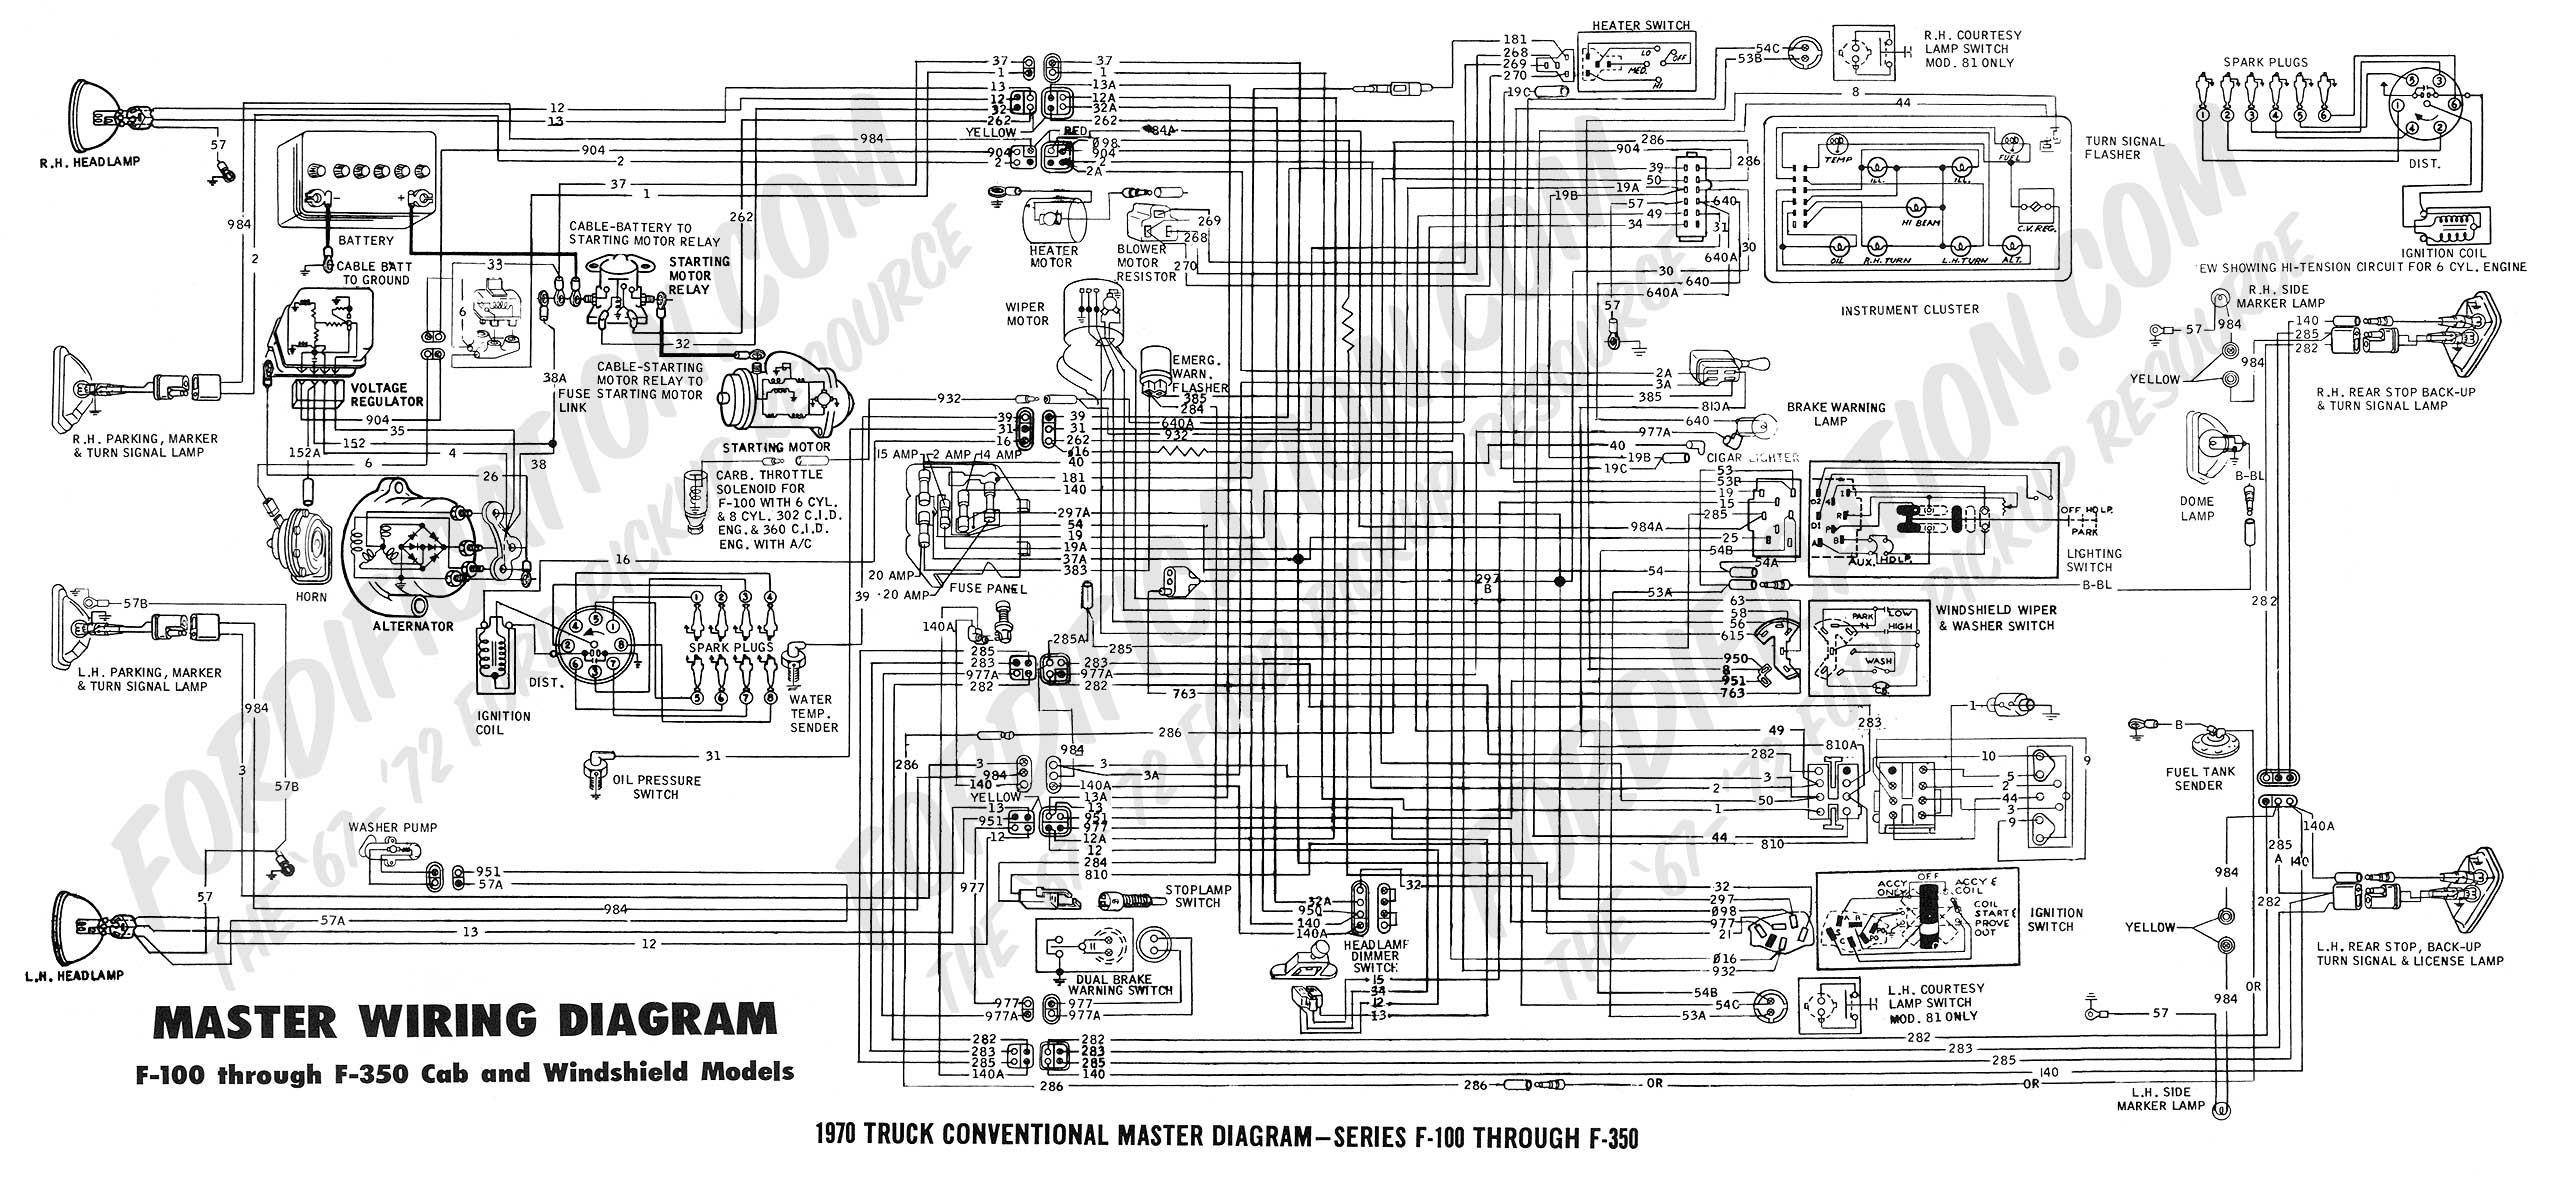 wiring diagram 70_master wiring diagram for 1971 ford f100 pickup readingrat net 1971 ford f250 wiring diagram at nearapp.co